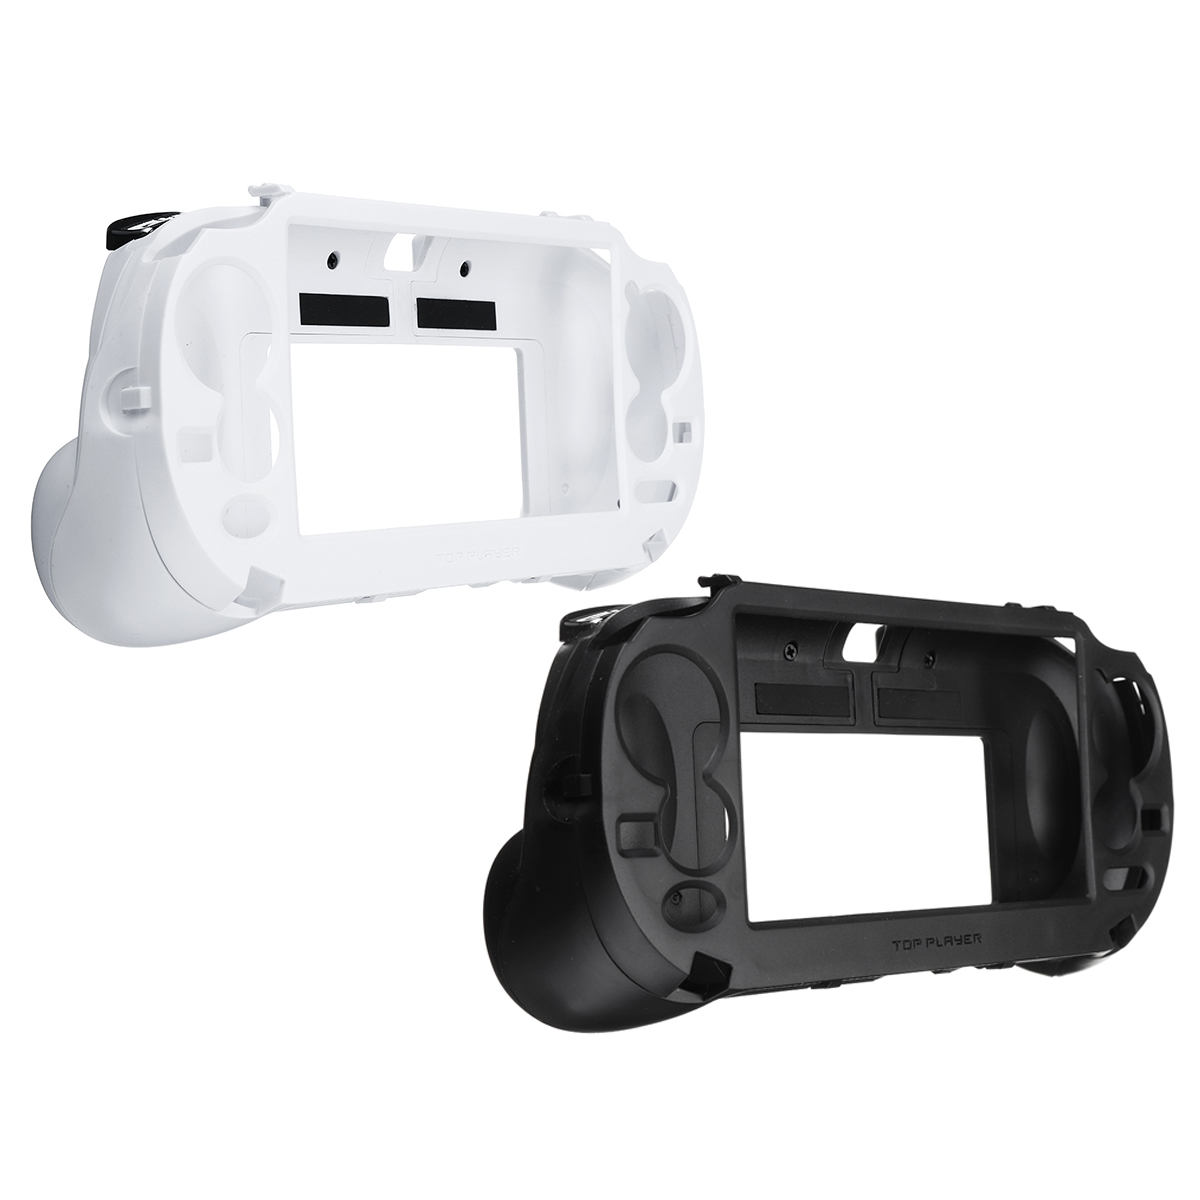 US $21 94 41% OFF|New Upgrade L2 R2 Handle Grip Case Cover Protector  Trigger Holder for PS Vita 1000 Trigger Handle Holder Case-in Replacement  Parts &